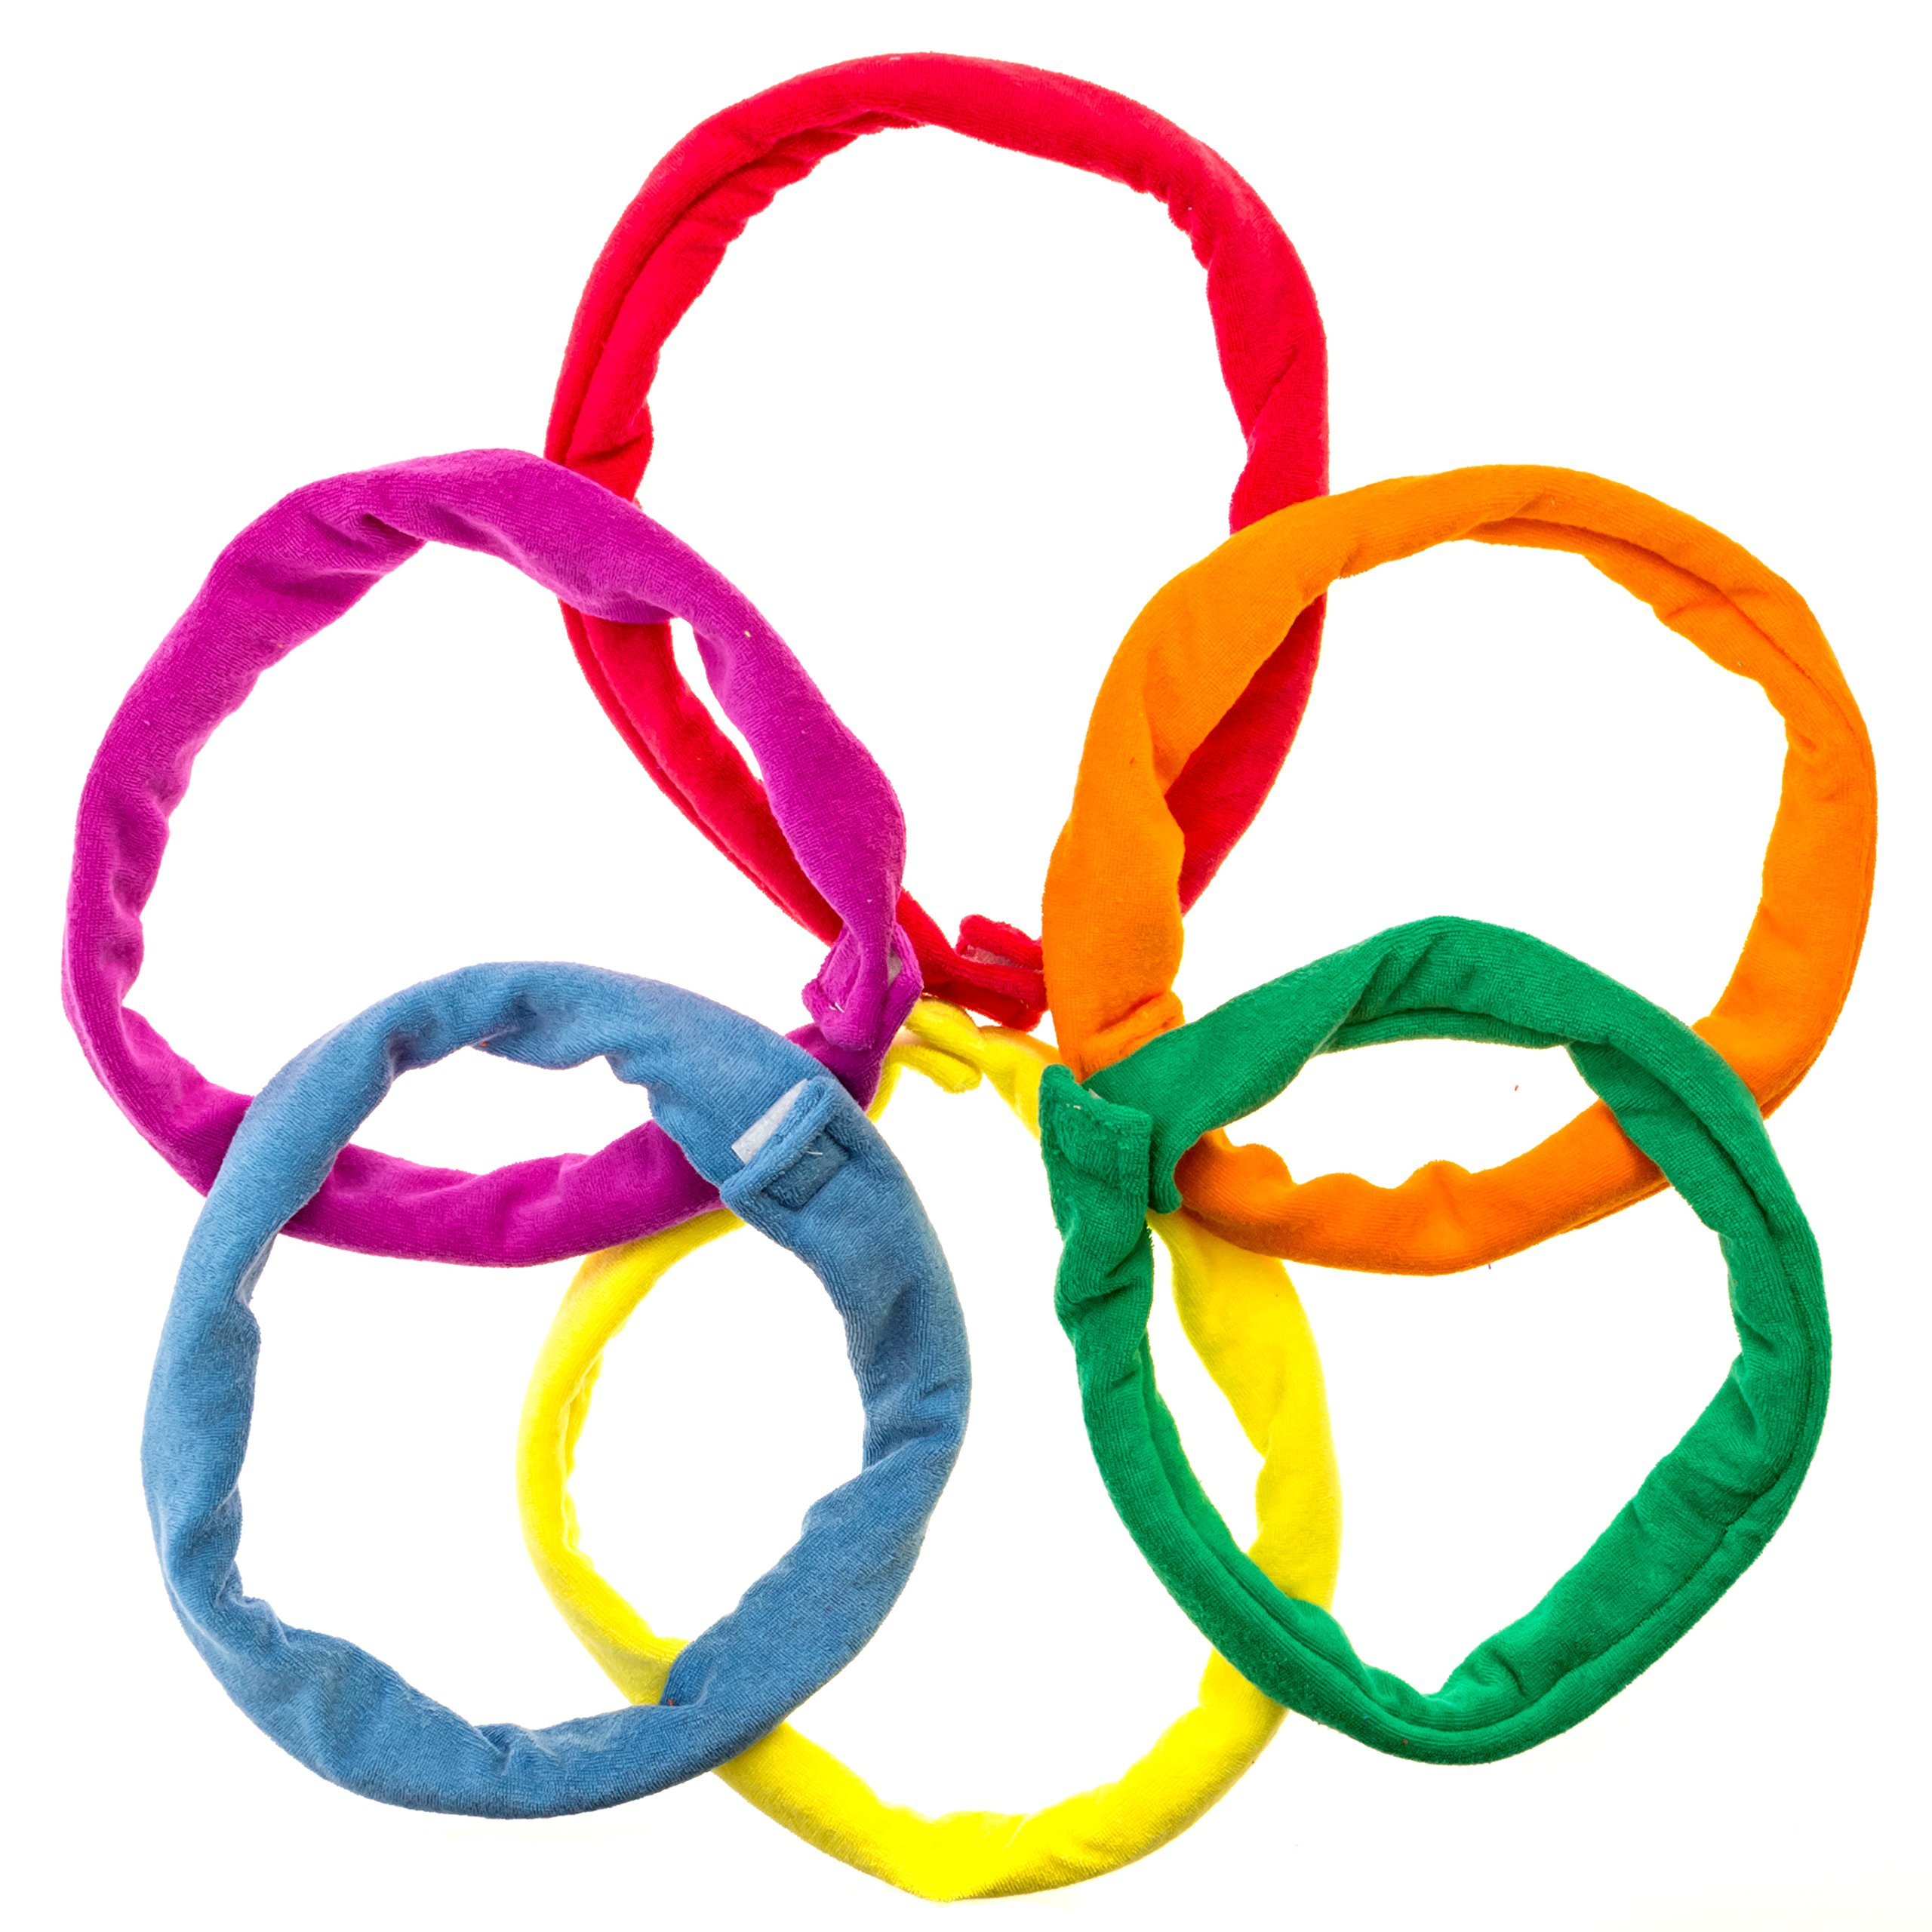 Chew Bands Necklaces 6-Pack Terry Cloth Super Absorbent Alternative to Chewing Shirts and Clothing